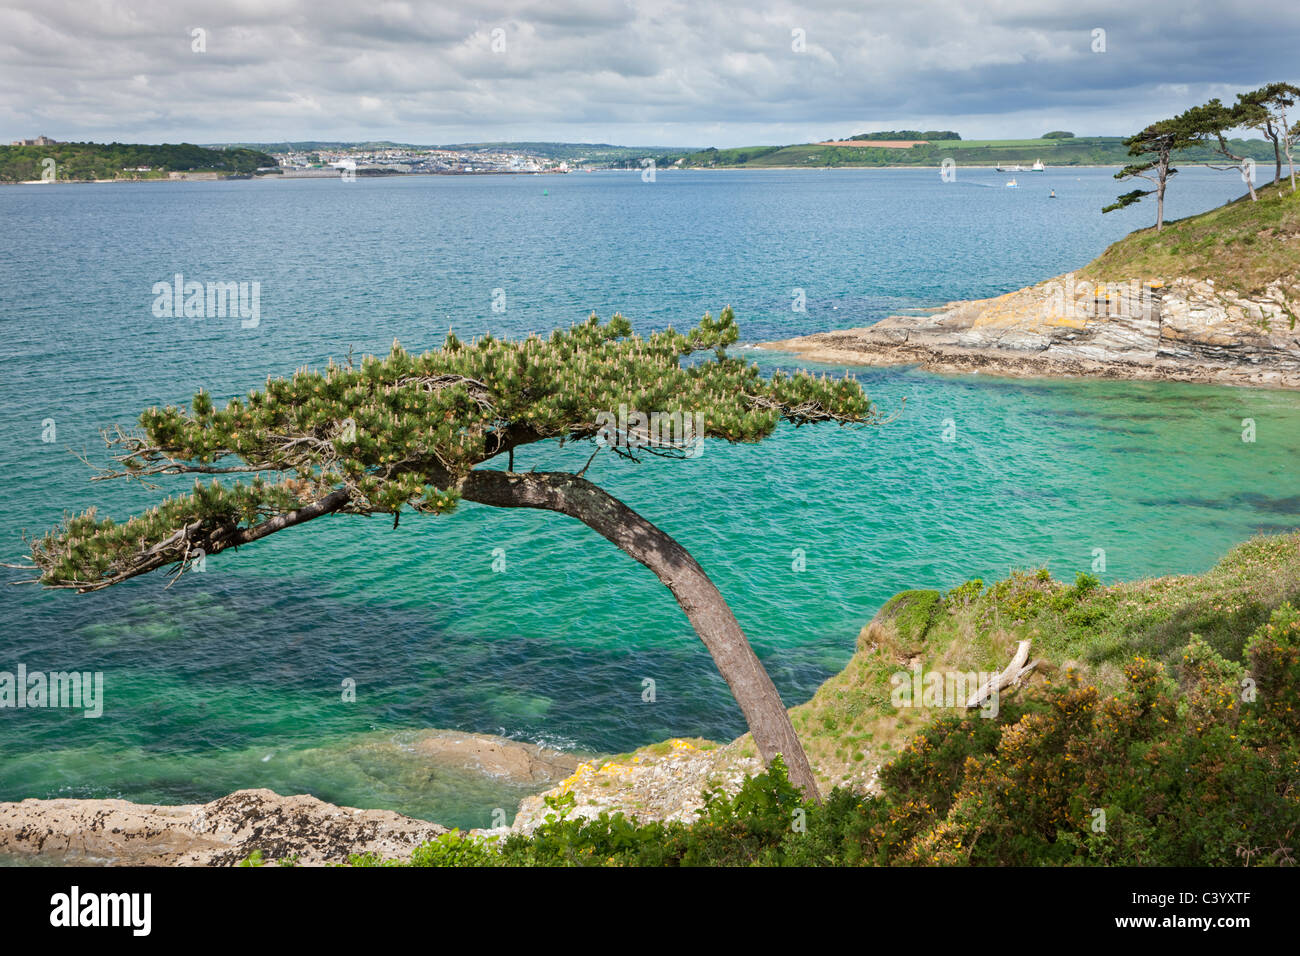 Pine tree on Carricknath Point, overlooking Carrick Roads towards Falmouth, Cornwall, England. Spring (May) 2011. - Stock Image